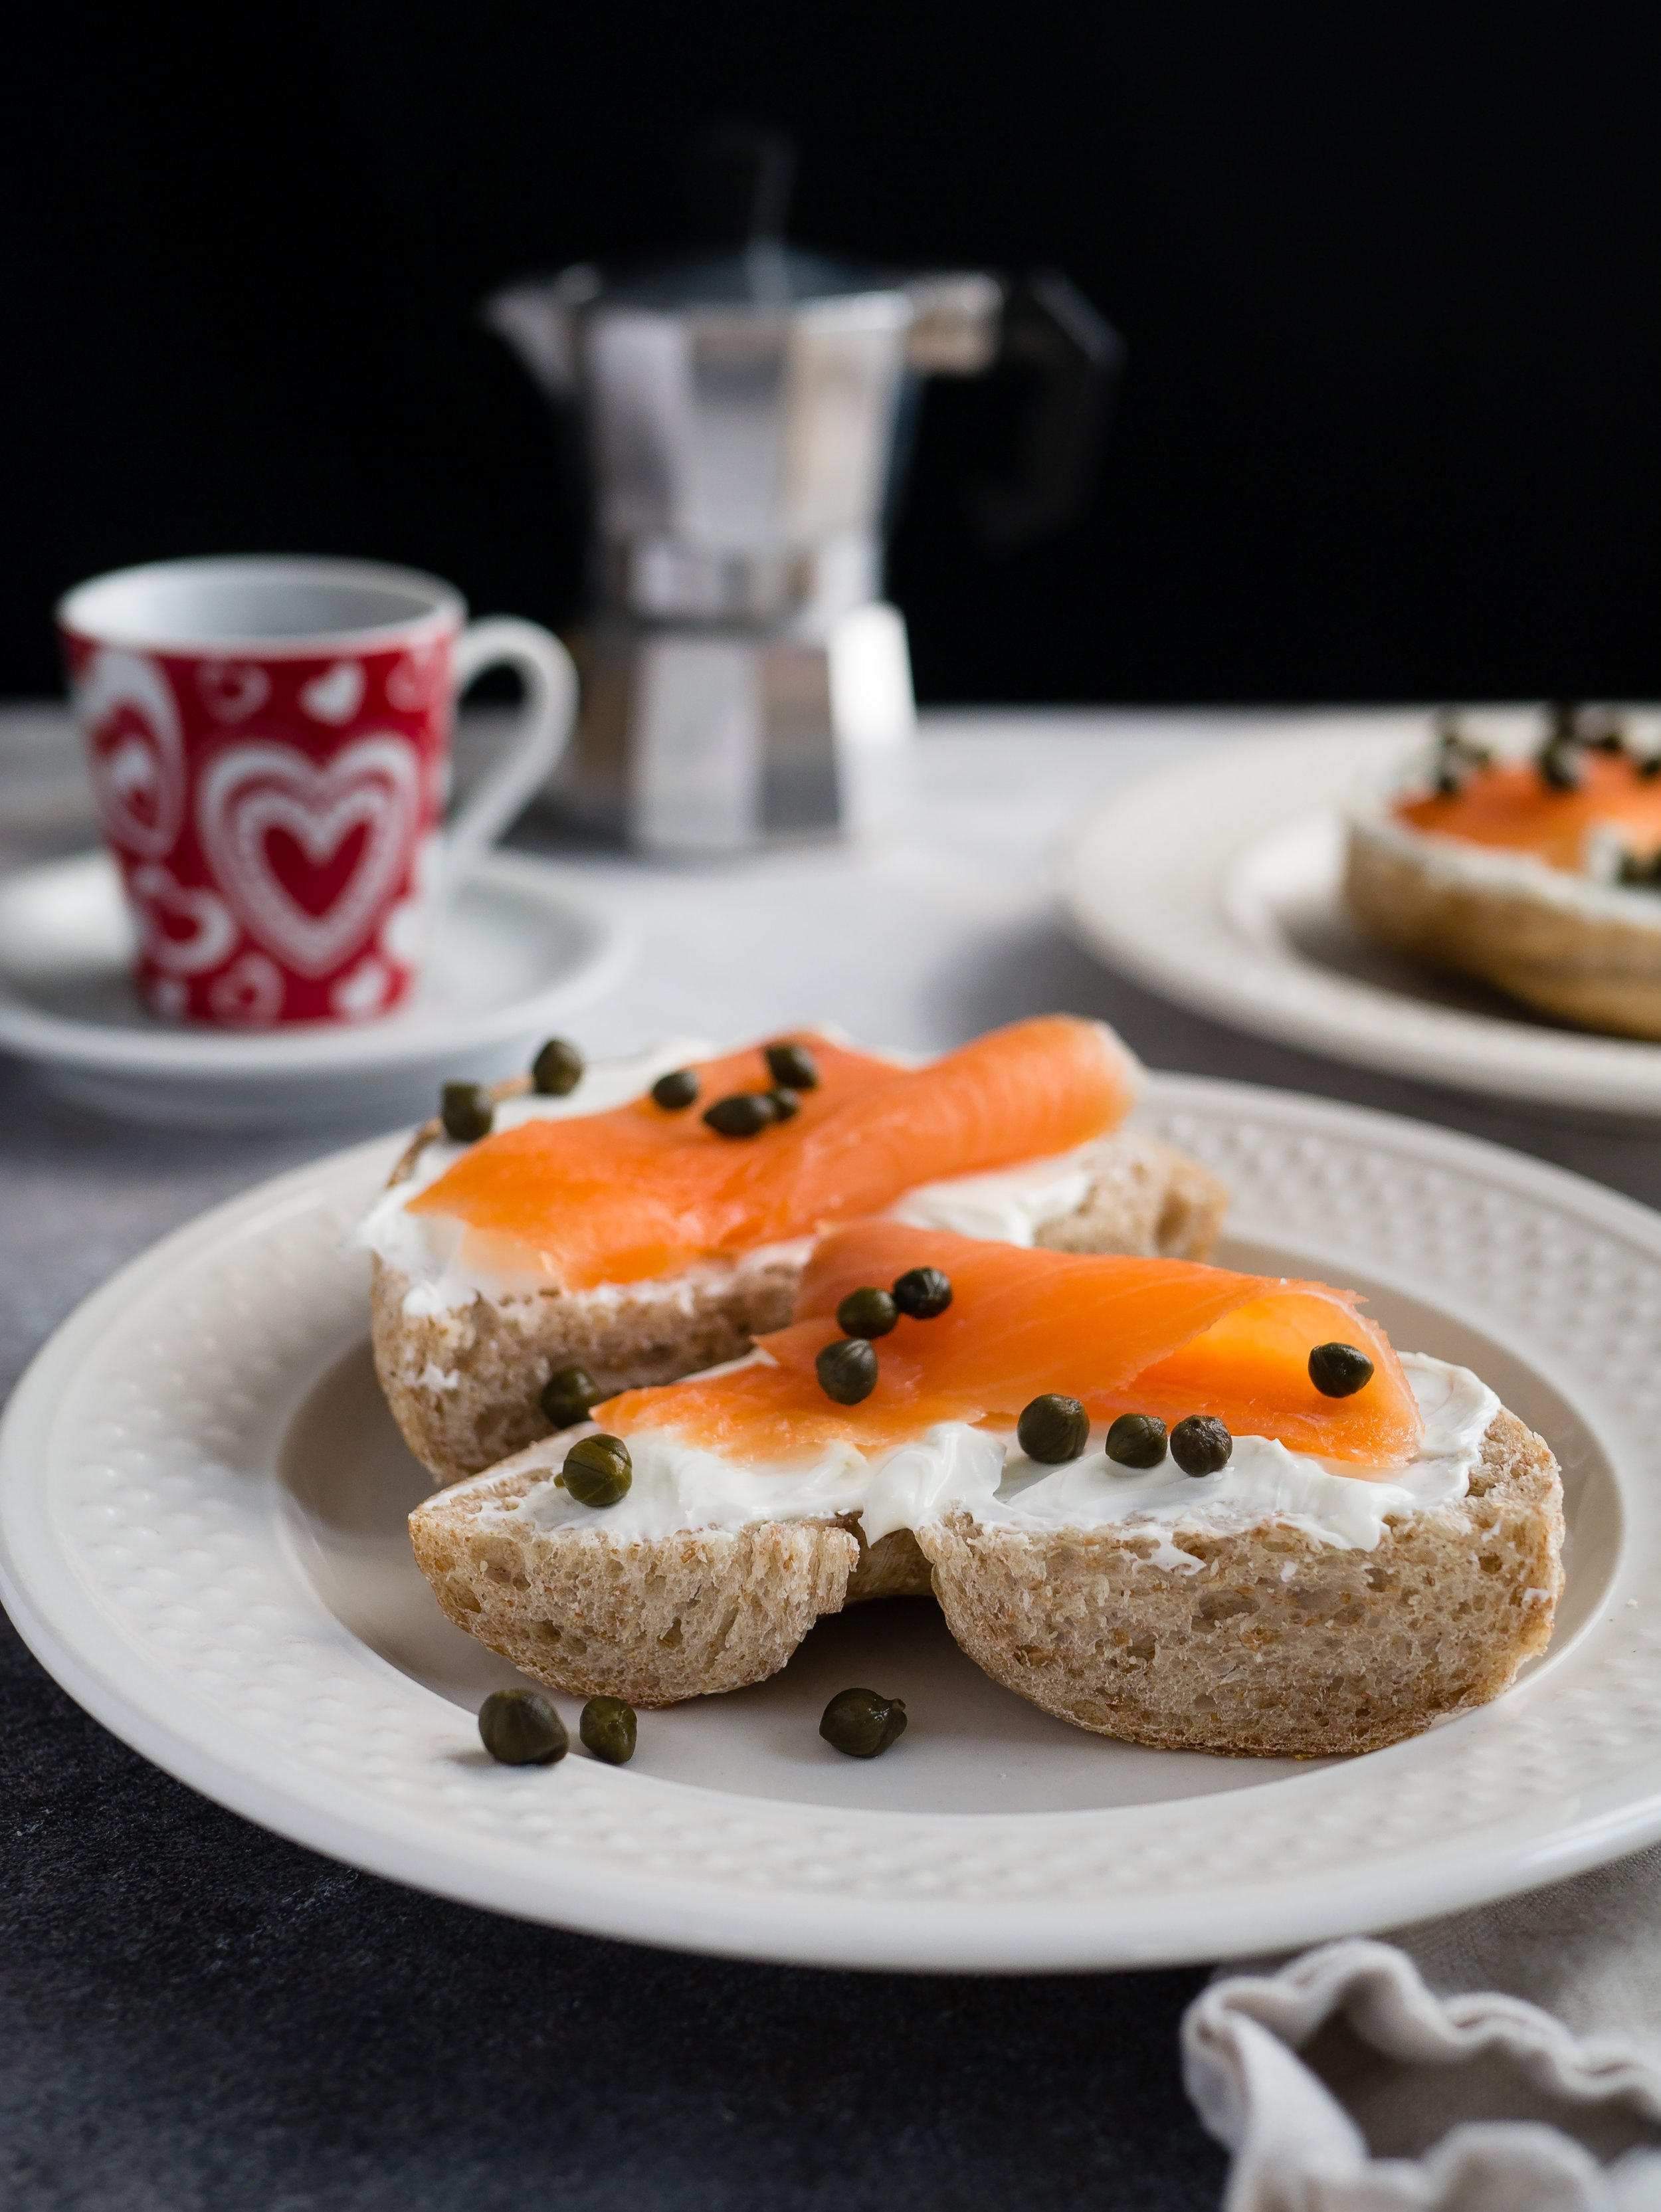 Nothing Says Brunch like Smoked Salmon and Bagels!